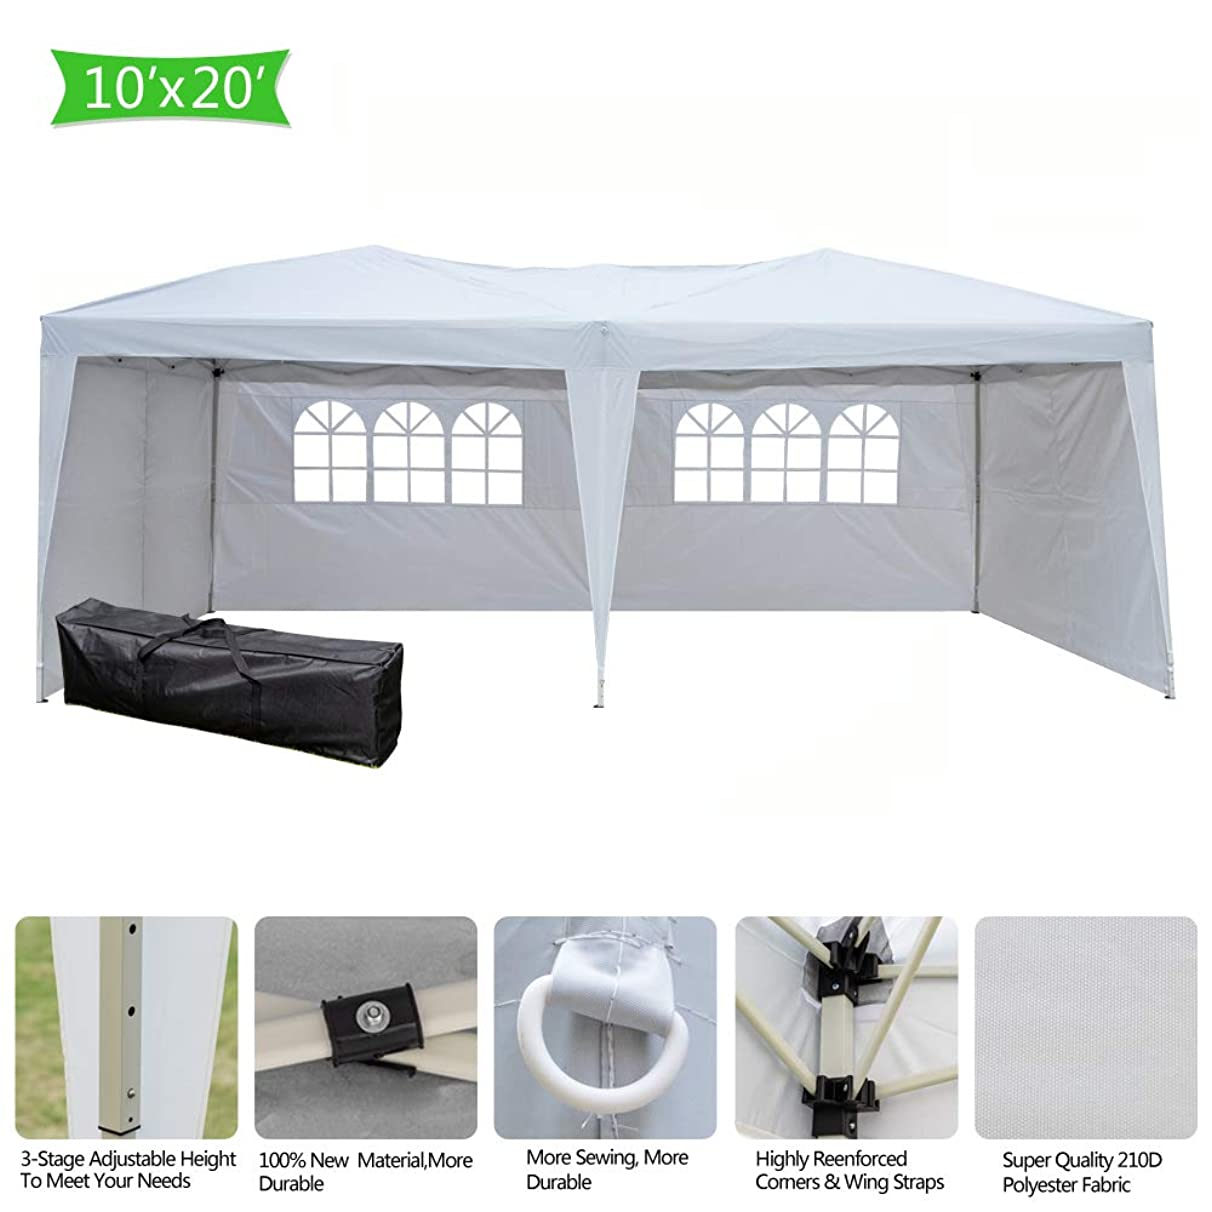 Teekland 10'x20' Outdoor Canopy Party Wedding Tent,Heavy Duty Pop-up Canopy Tent,Instant Canopy Tent,Practical Waterproof Folding Tent with Carry Bag